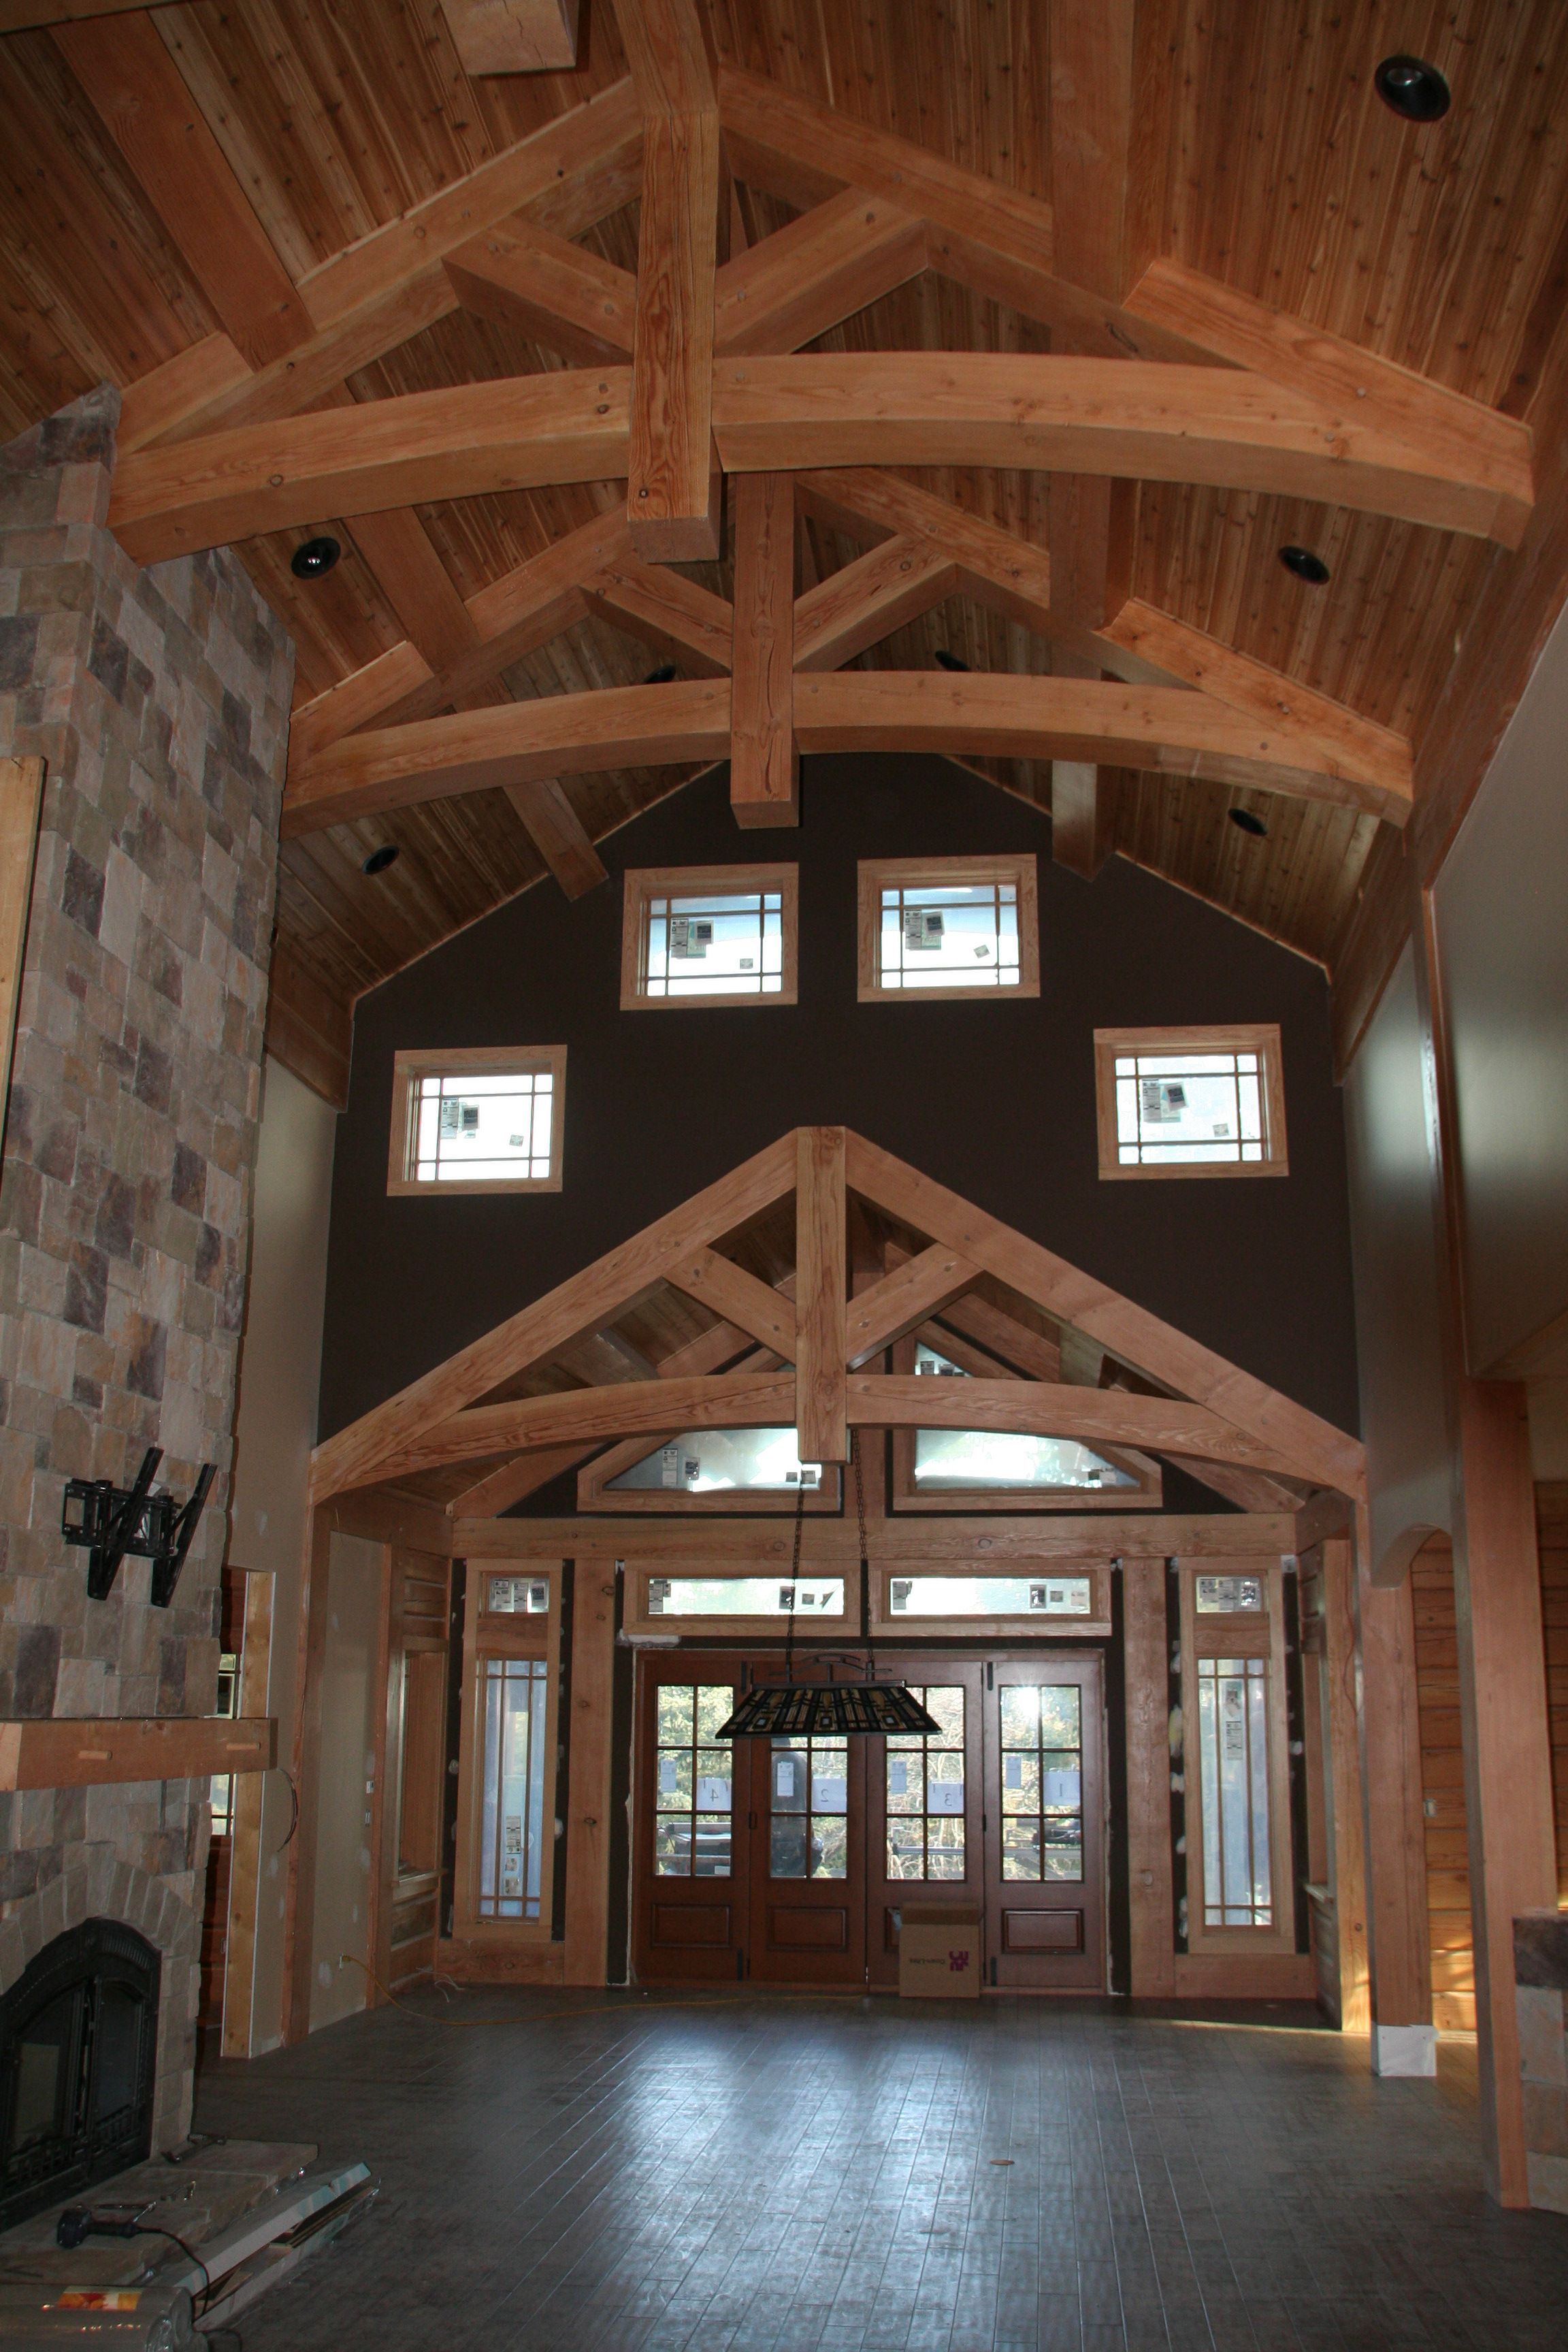 Wood River Log Home Plan by PrecisionCraft - Great Room ...